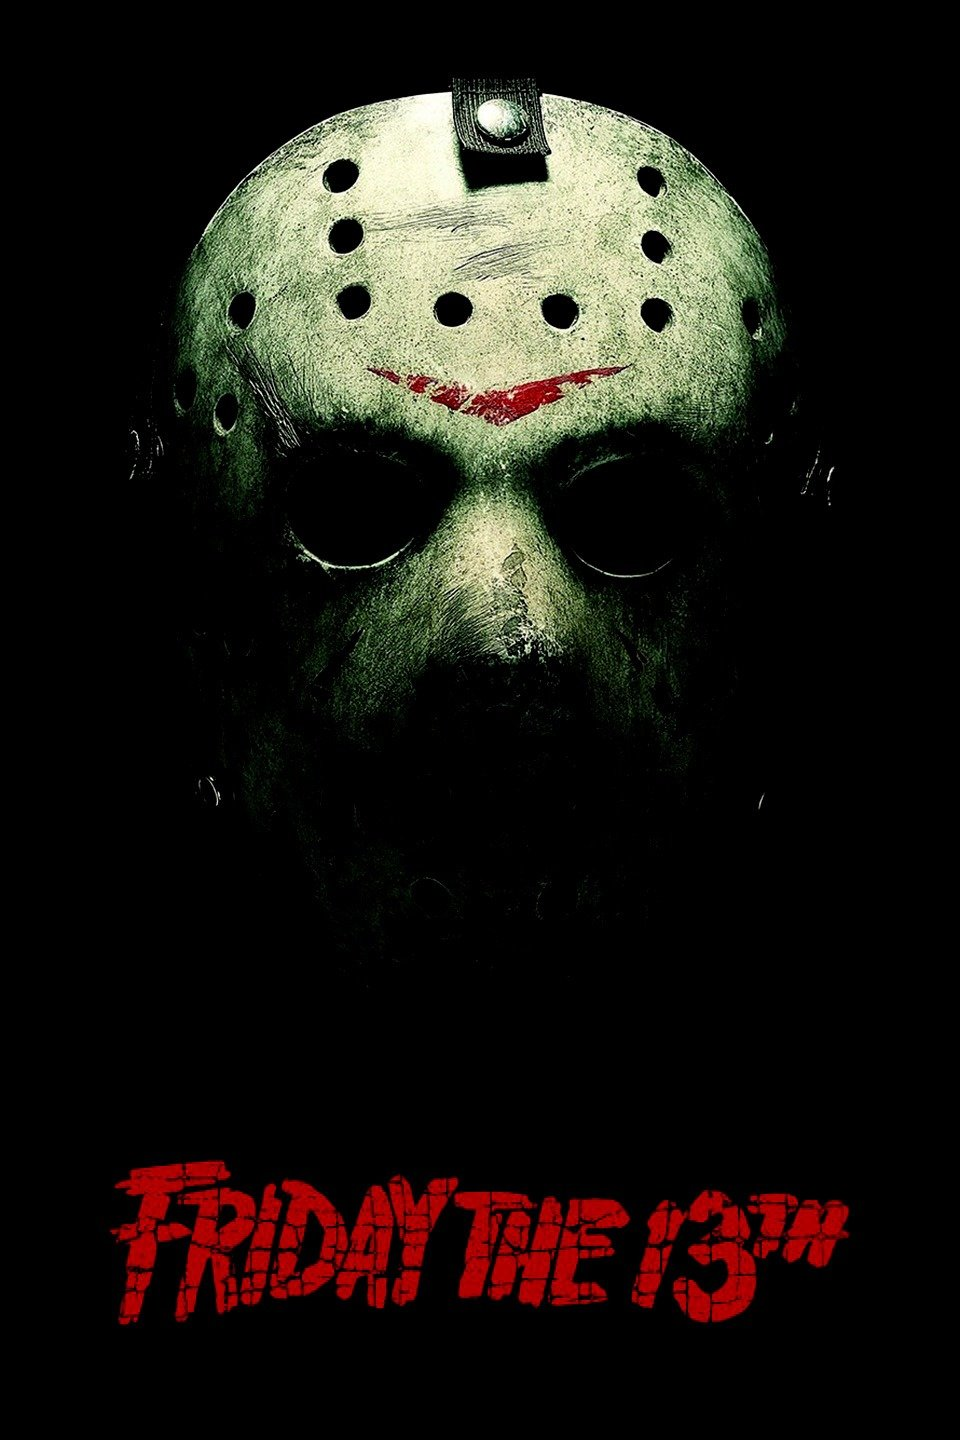 Friday the 13th [Theatrical Cut] (2009) 480p BluRay x264 Dual Audio [Hindi DD2.0 – English DD5.1] – Esub-279 MB